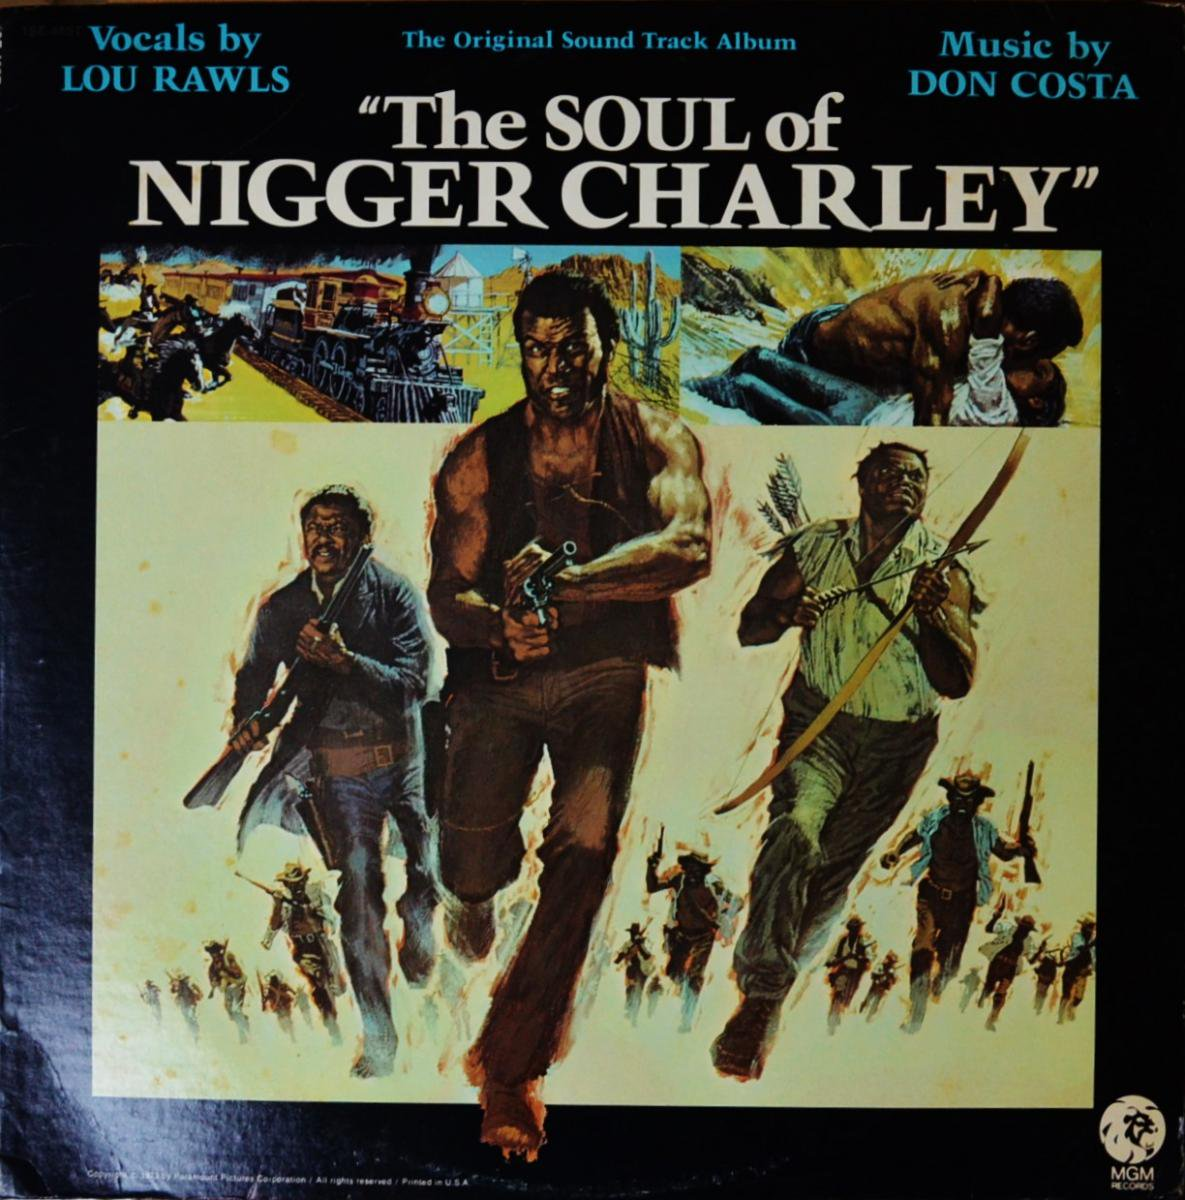 LOU RAWLS / DON COSTA / THE SOUL OF NIGGER CHARLEY (ORIGINAL SOUNDTRACK ALBUM) (LP)